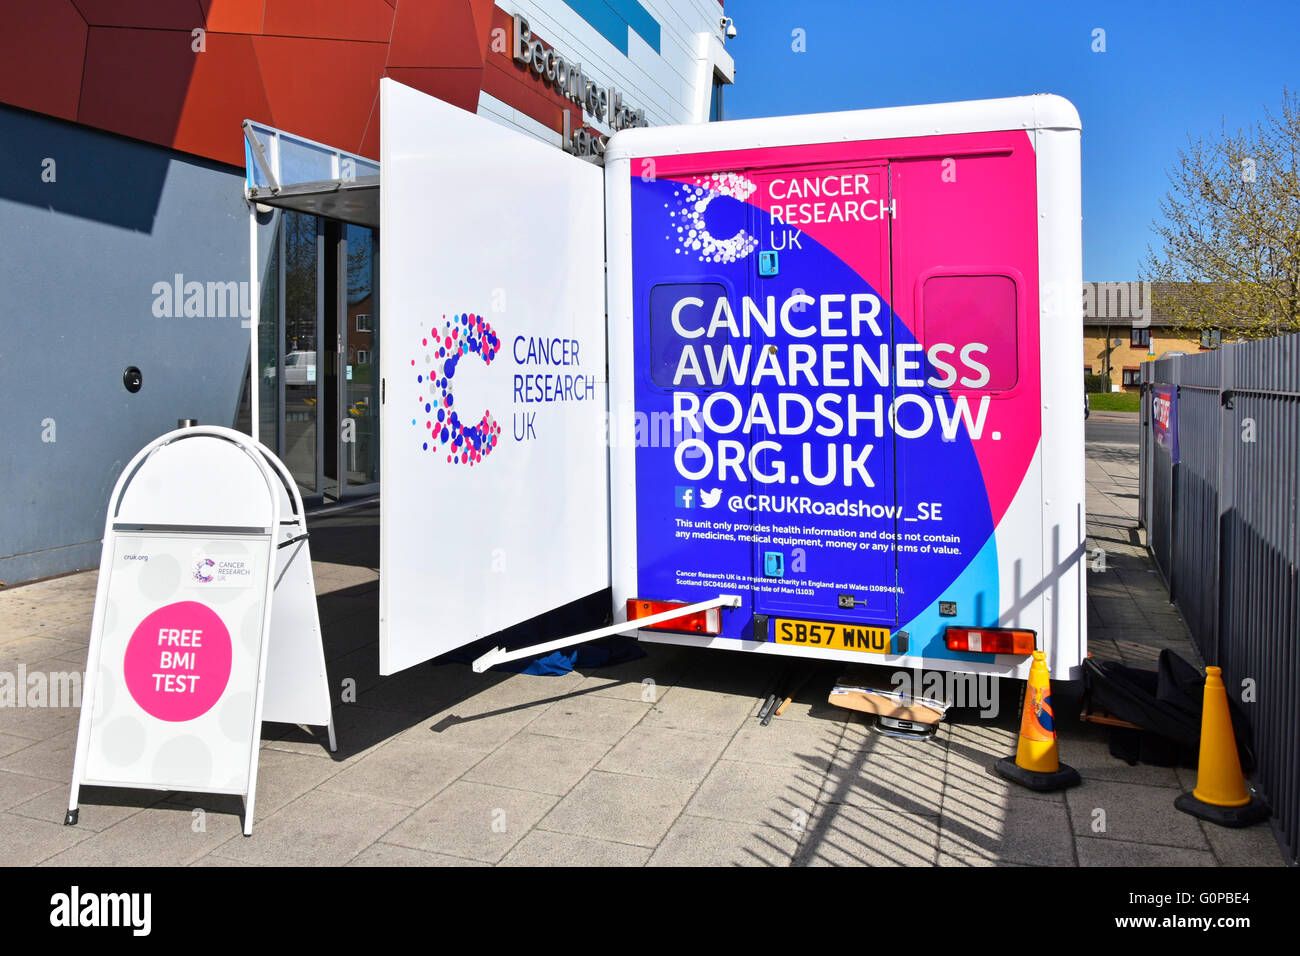 Cancer research uk awareness roadshow trailer parked outside Becontree Heath Leisure Centre in East London Borough - Stock Image